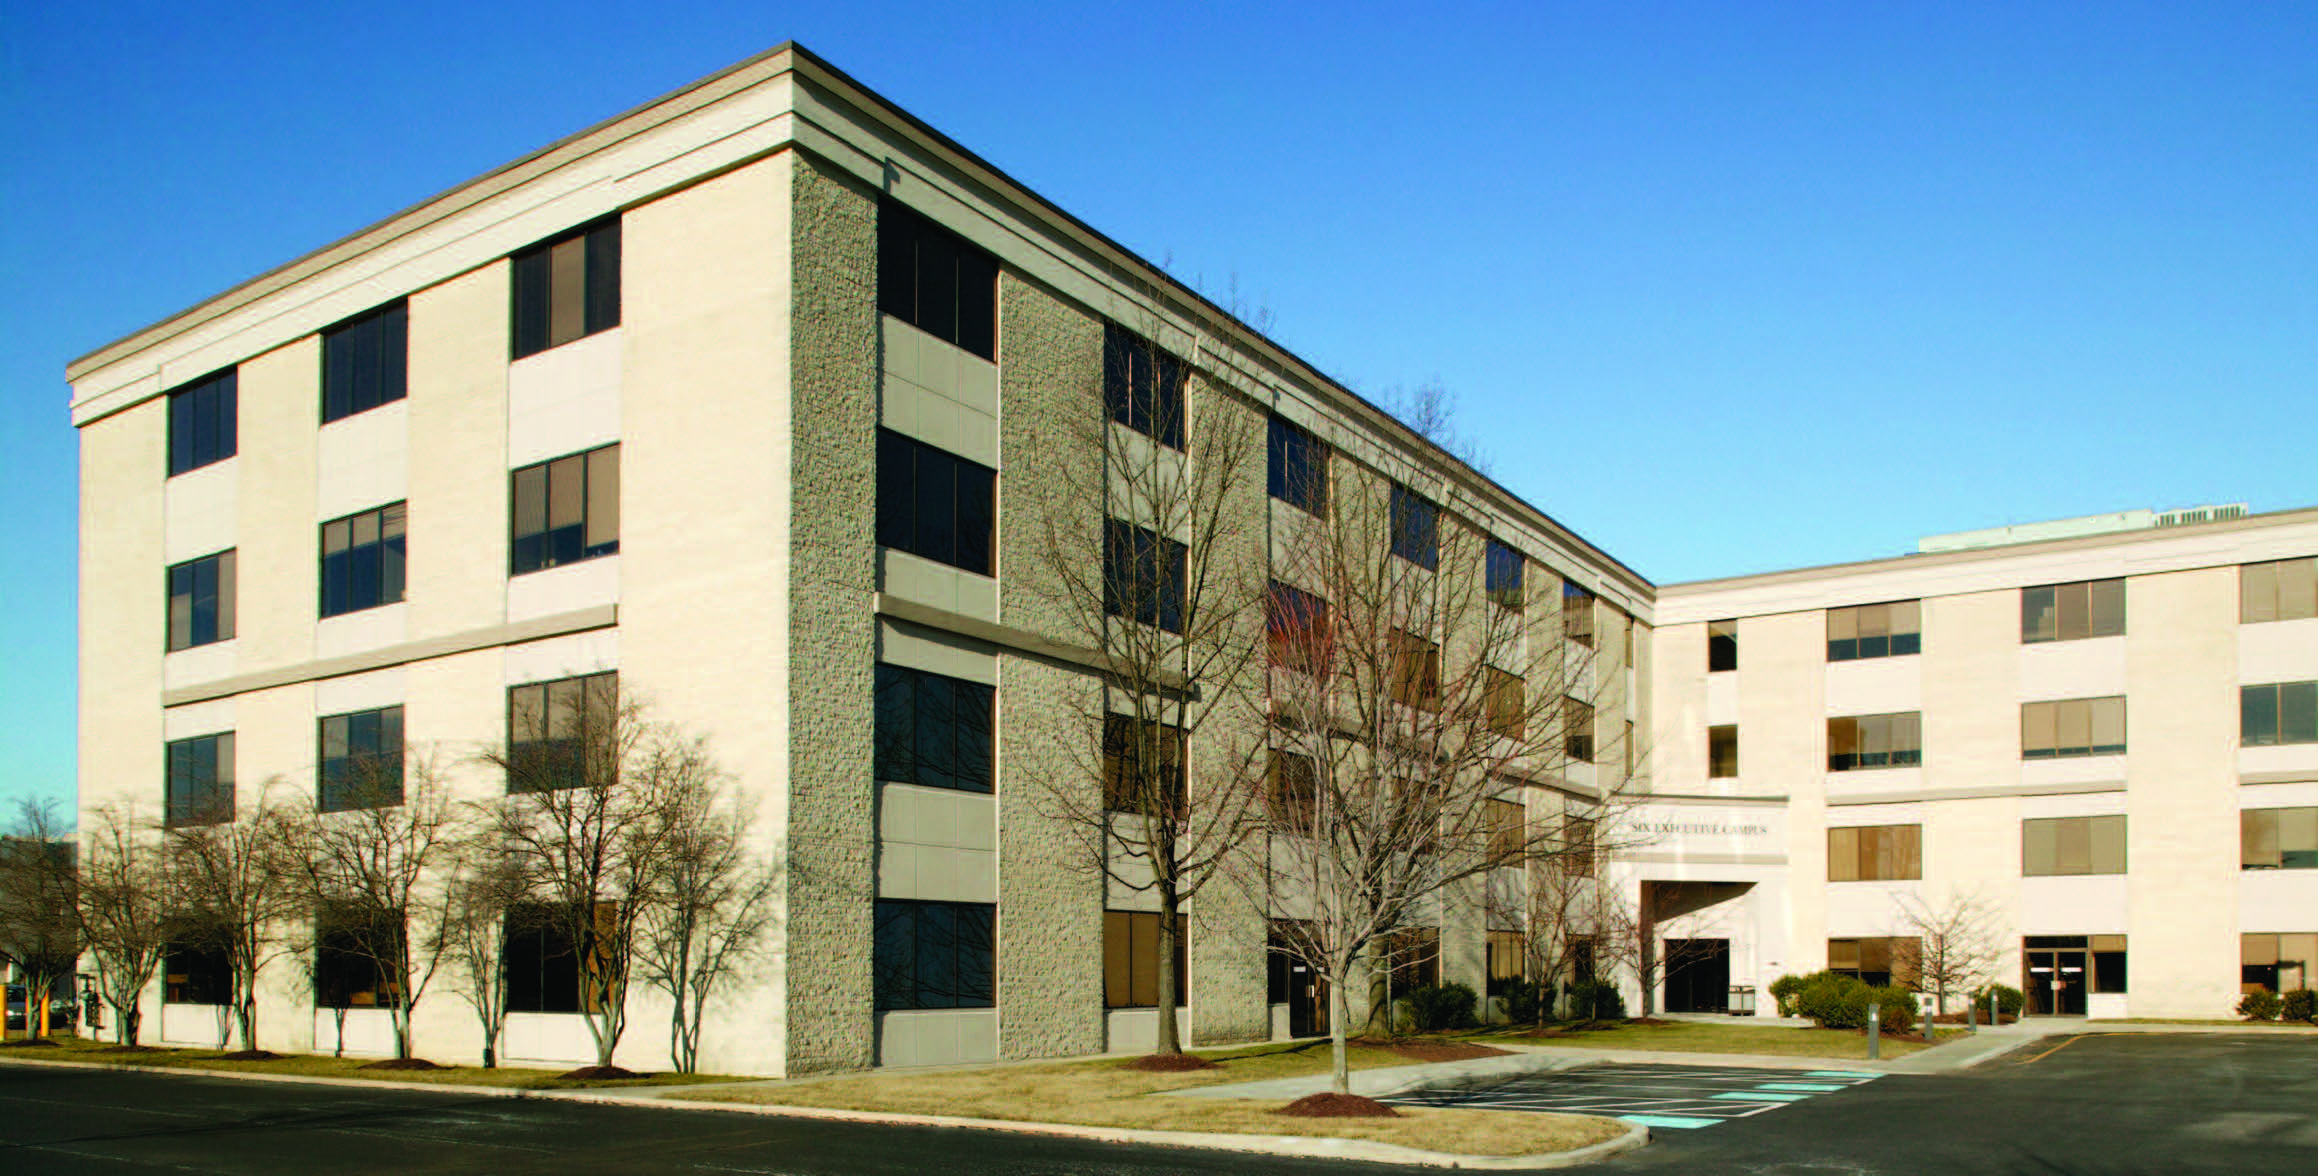 5 & 6 Executive Campus Cherry Hill, New Jersey